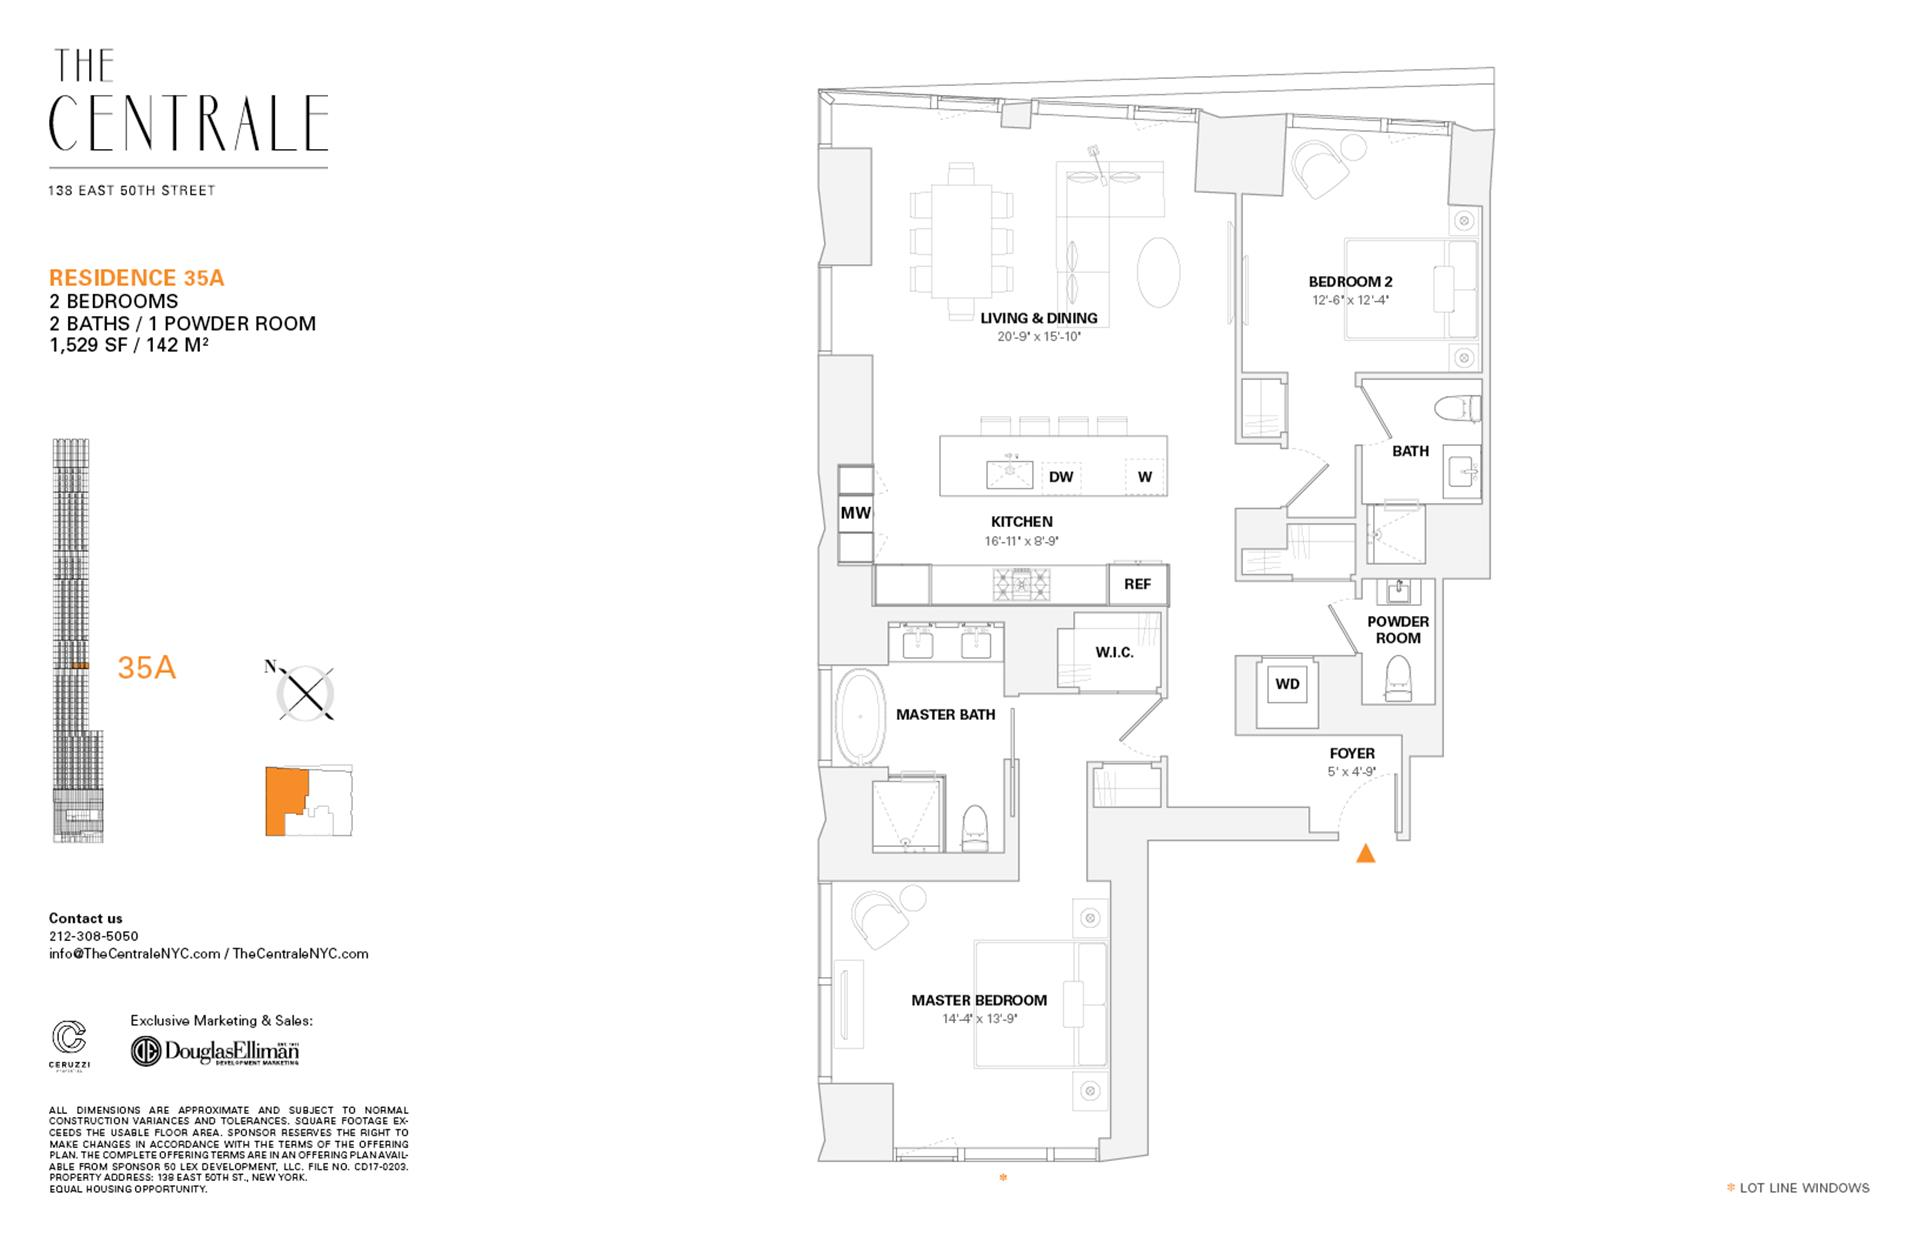 Floor plan of The Centrale, 138 East 50th Street, 35A - Midtown, New York